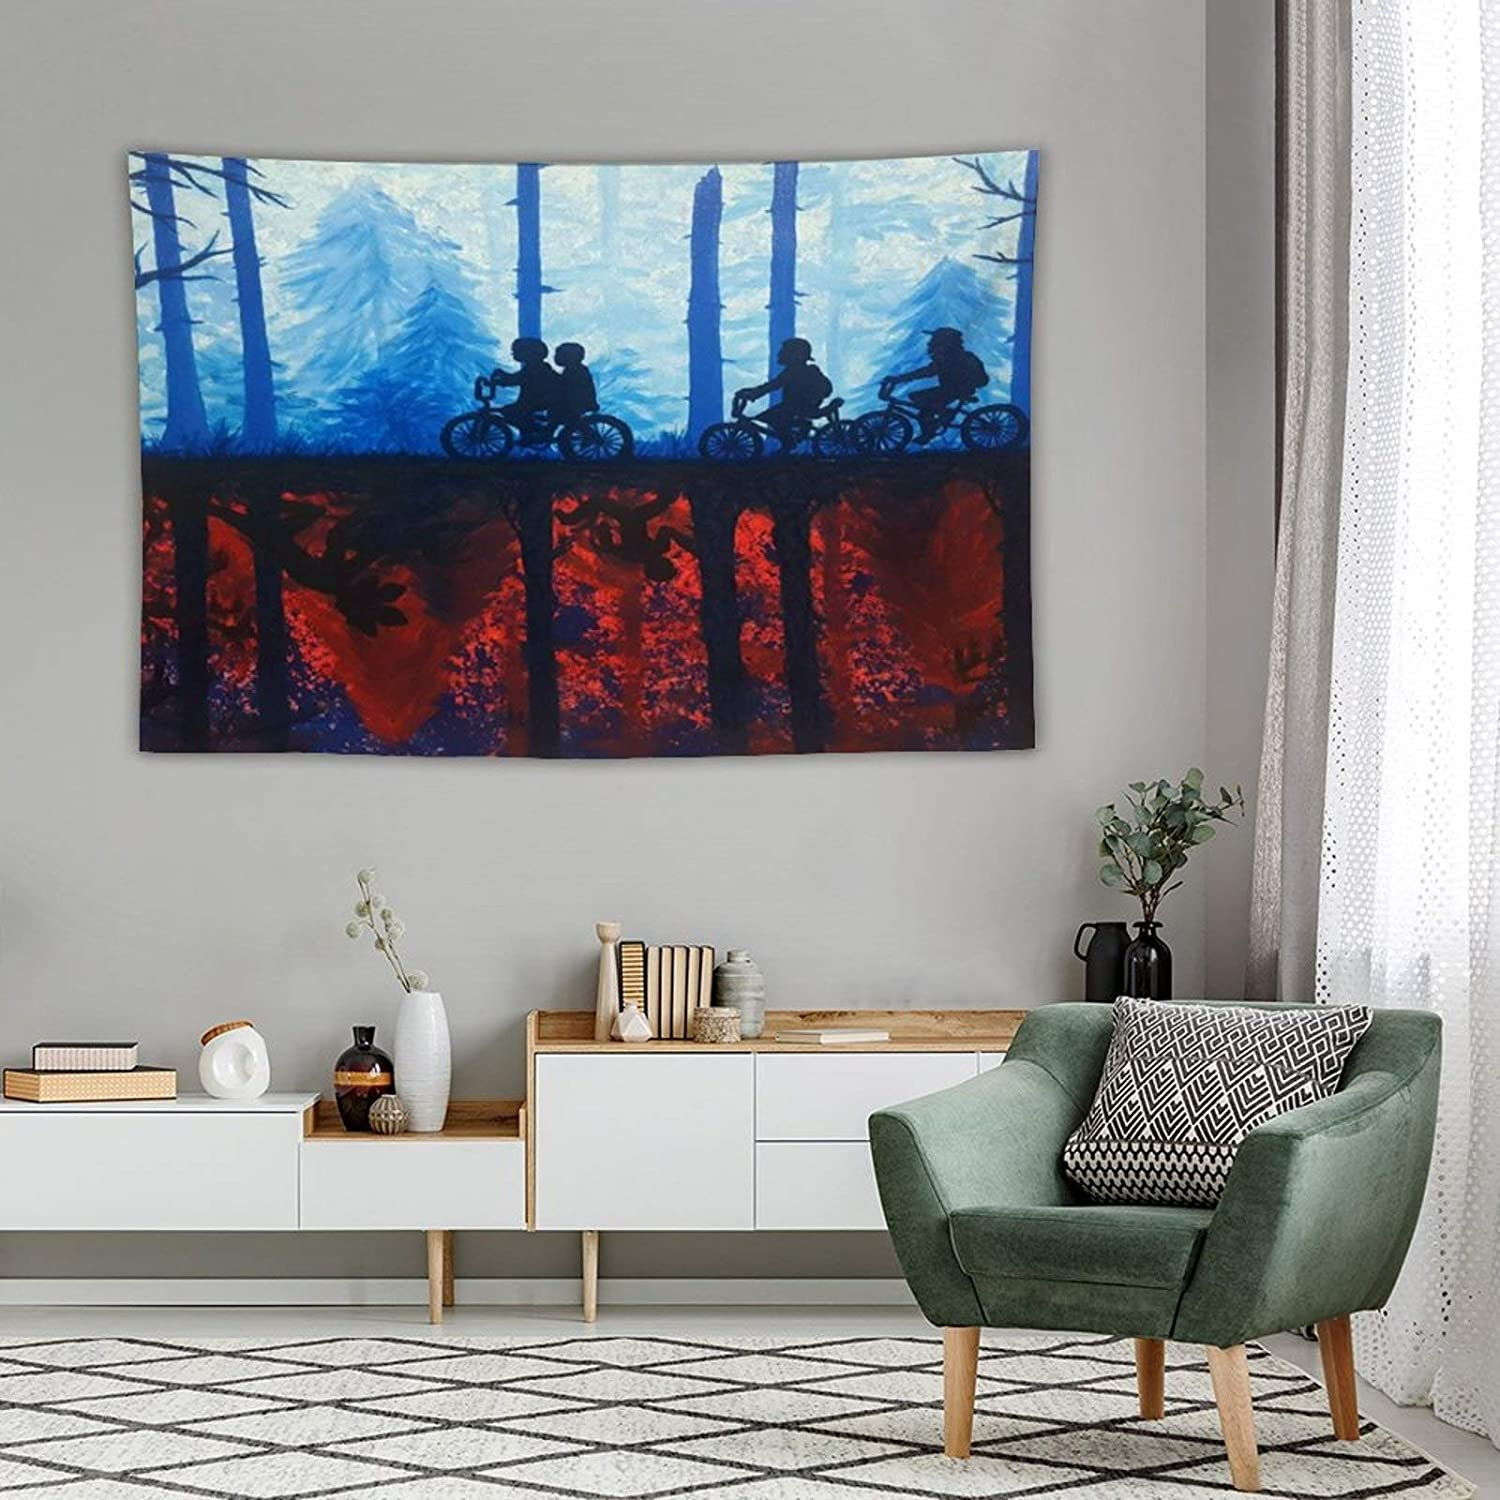 Tapestry Wall Decor Cool Things To Paint Cool Your Boyfriend Stranger Tapestry For Bedroom Dorm Bathroom Home Hanging Blanket Line Art Living Room Decoration 50''×60''